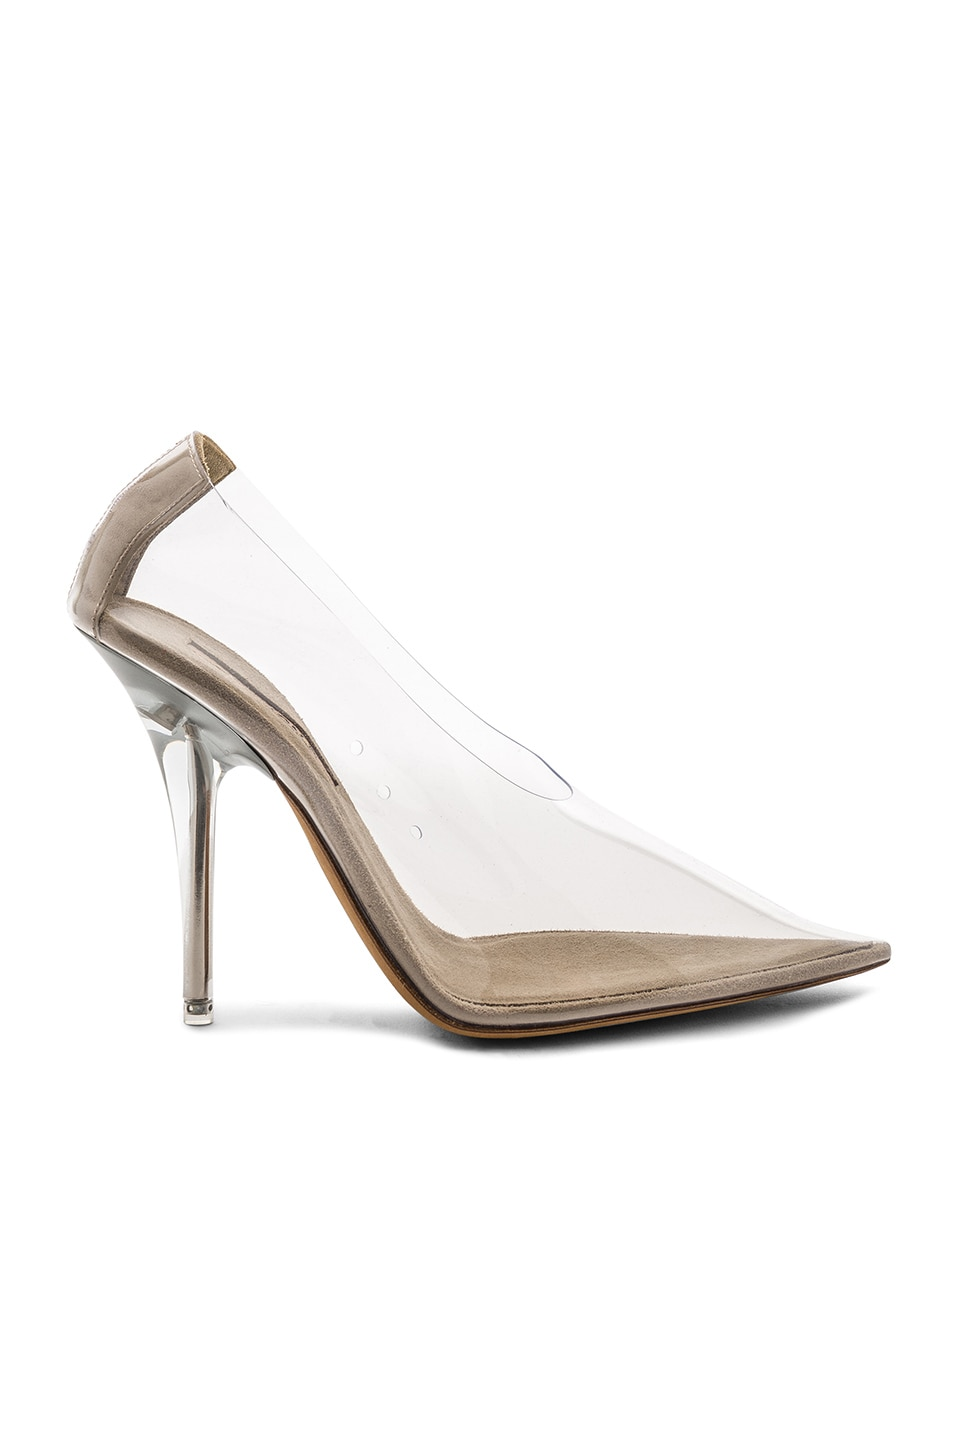 YEEZY Season 5 PVC Pump in Clear